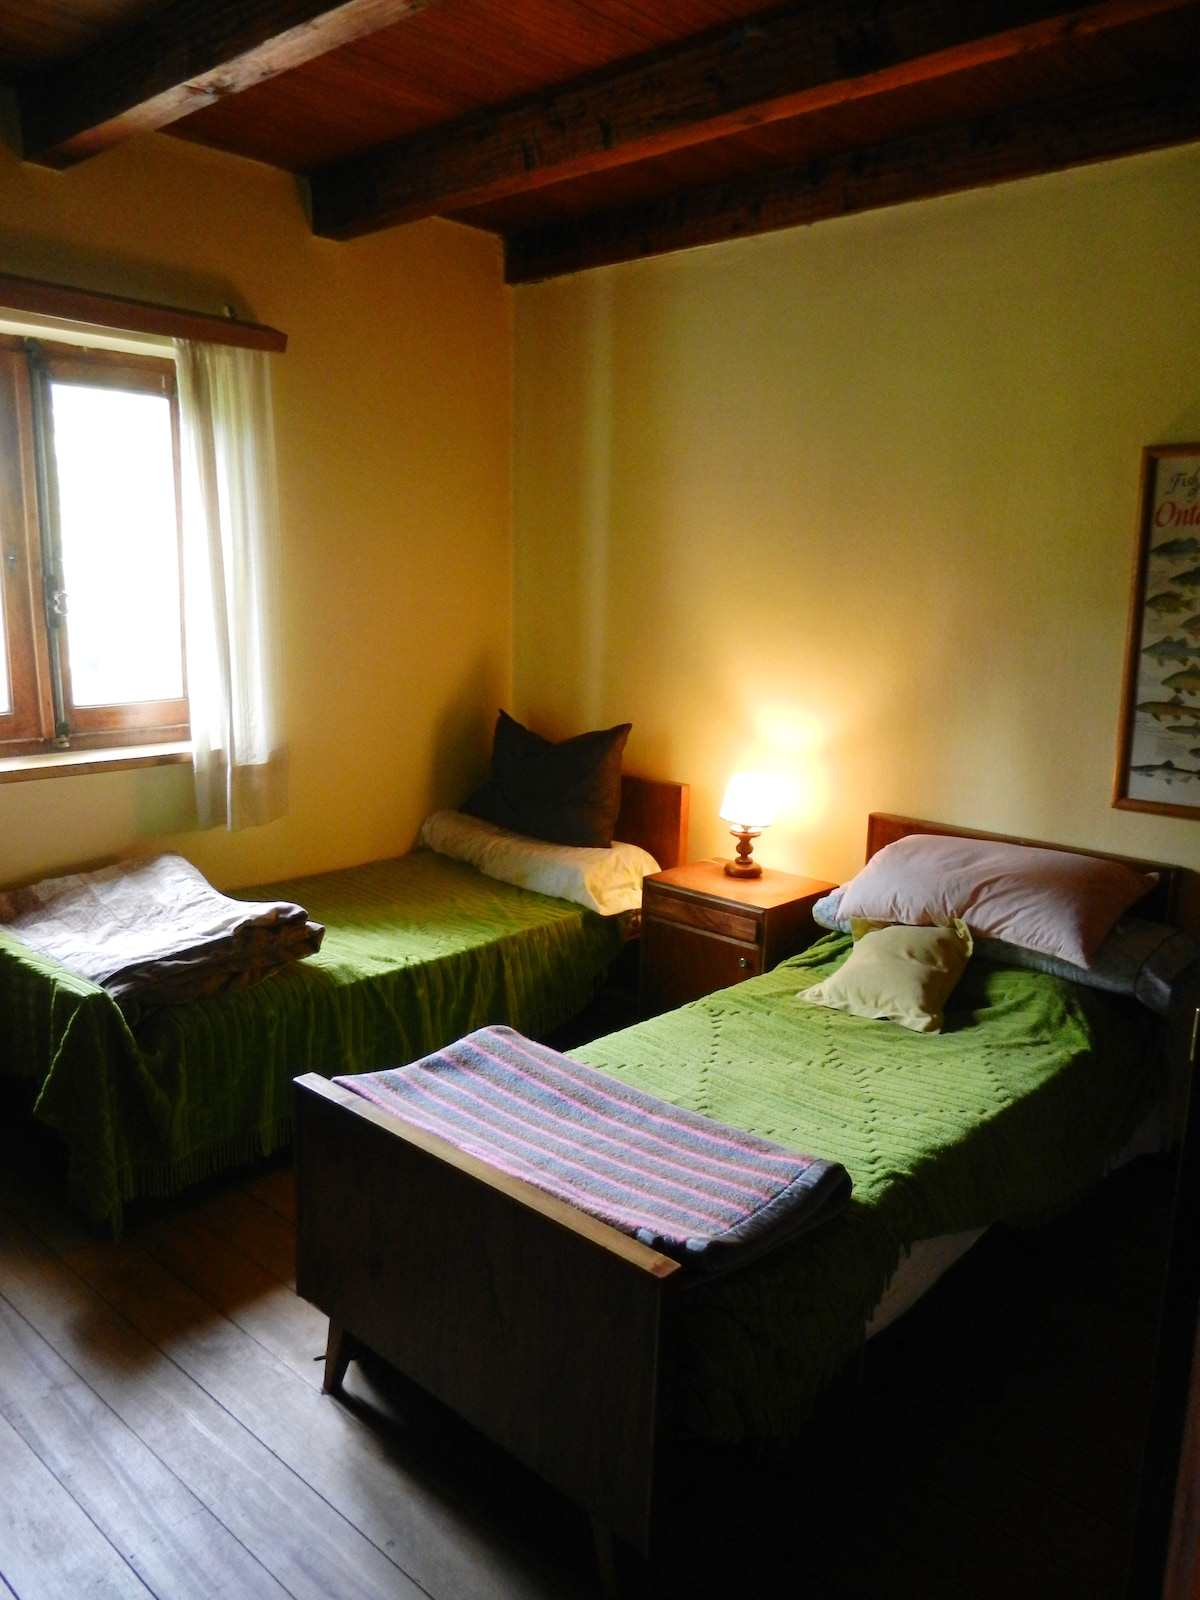 Twin bedded room, with garden and lakeview